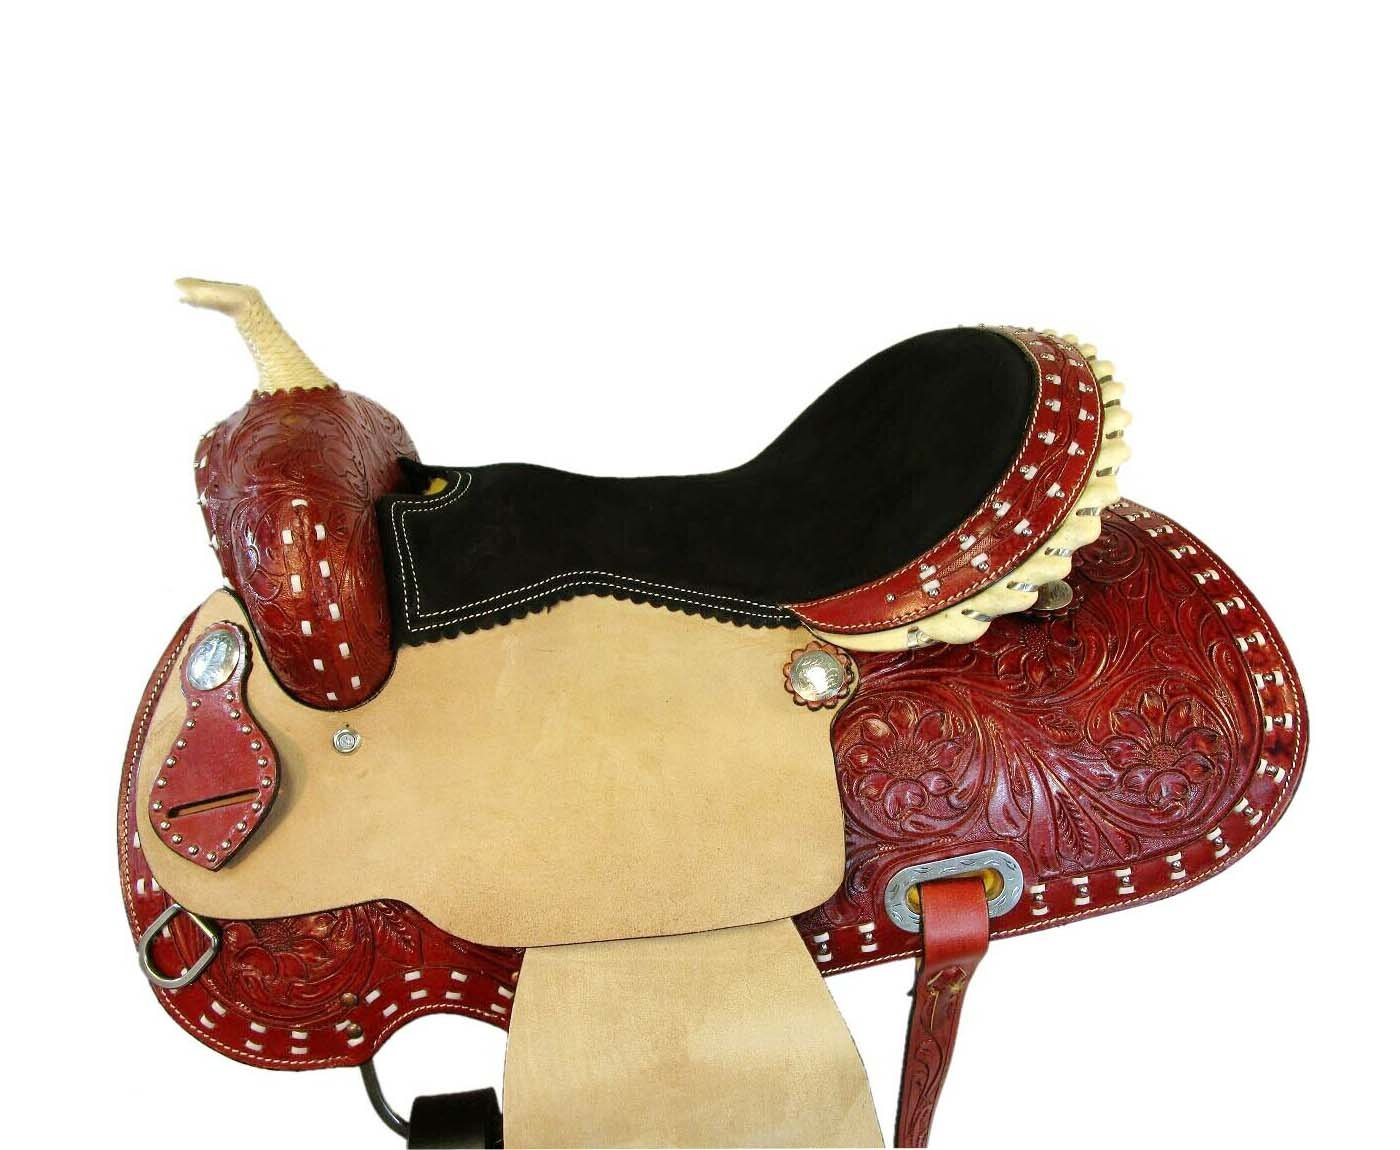 WESTERN HORSE SADDLE RANCH ROPING TOOLED LEATHER TRAIL PLEASURE PREMIUM QUALITY BROWN COLOR SIZE 20